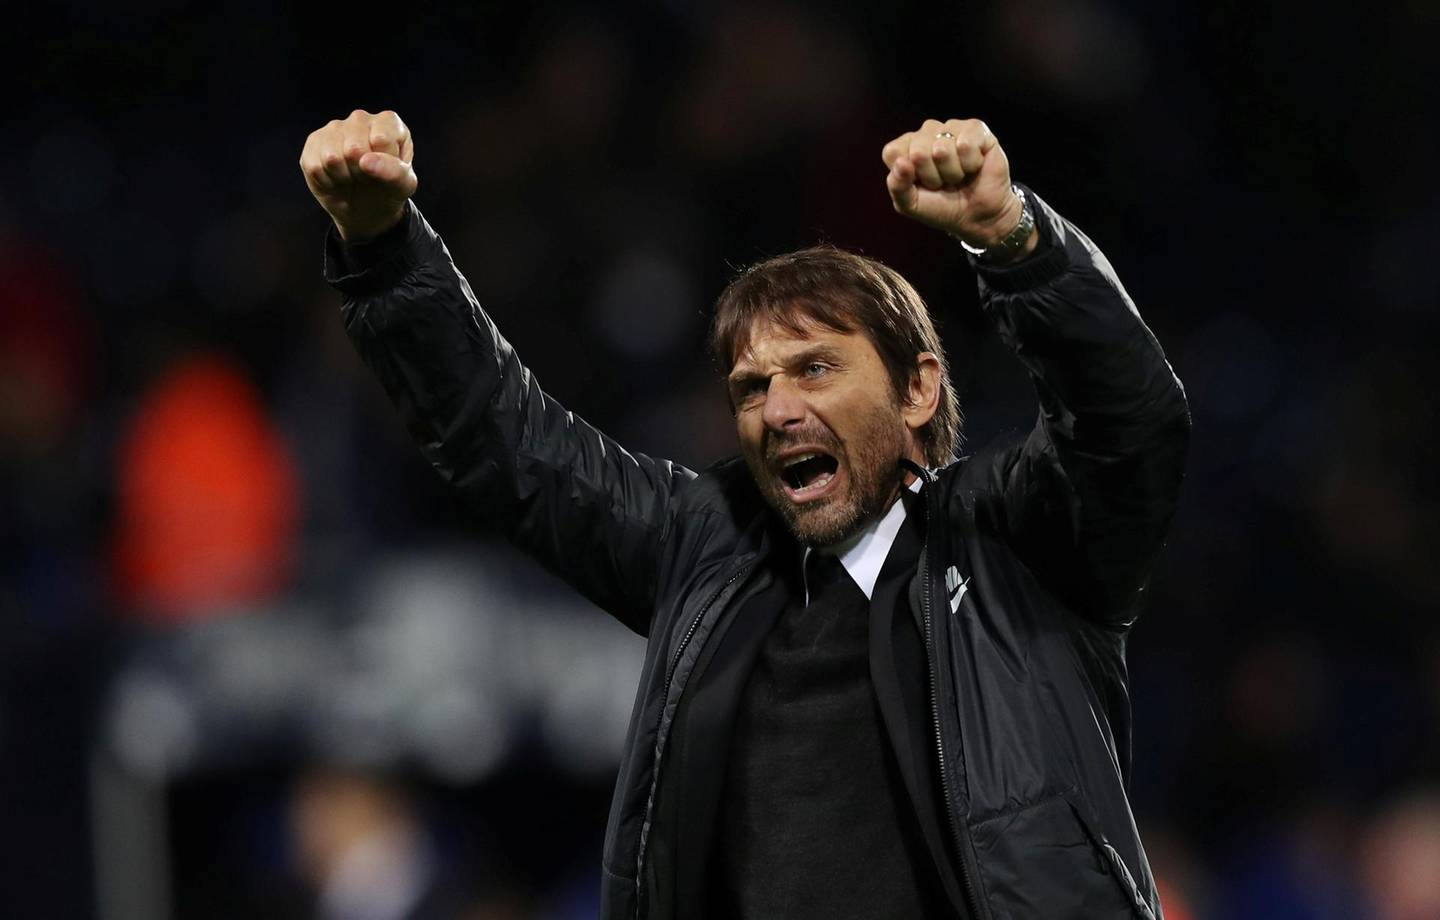 """Soccer Football - Premier League - West Bromwich Albion vs Chelsea - The Hawthorns, West Bromwich, Britain - November 18, 2017   Chelsea manager Antonio Conte celebrates after the match   Action Images via Reuters/Peter Cziborra    EDITORIAL USE ONLY. No use with unauthorized audio, video, data, fixture lists, club/league logos or """"live"""" services. Online in-match use limited to 75 images, no video emulation. No use in betting, games or single club/league/player publications. Please contact your account representative for further details."""